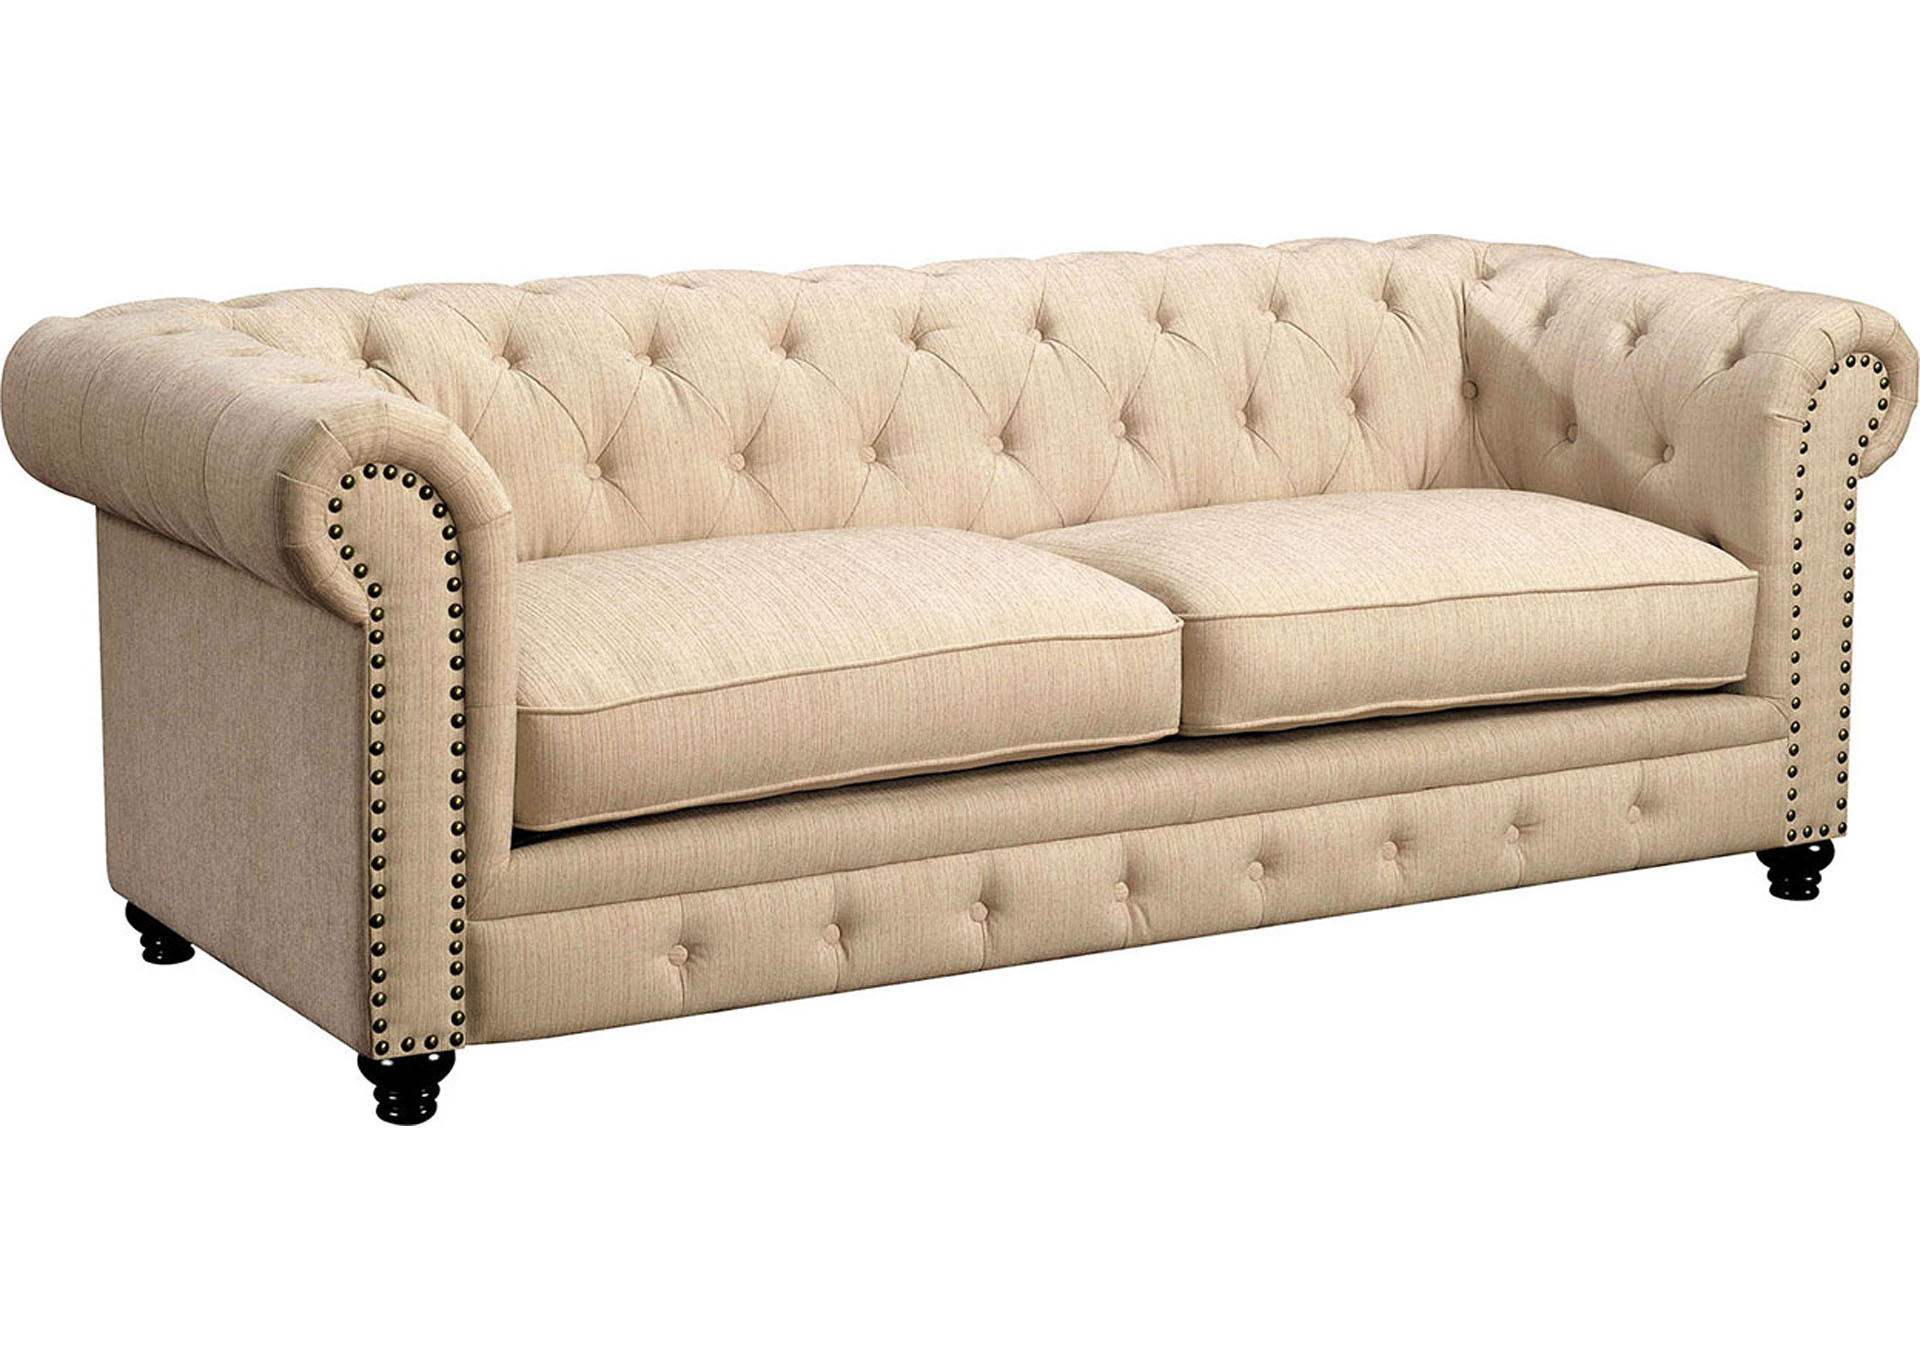 Stanford Ivory Sofa,Furniture of America